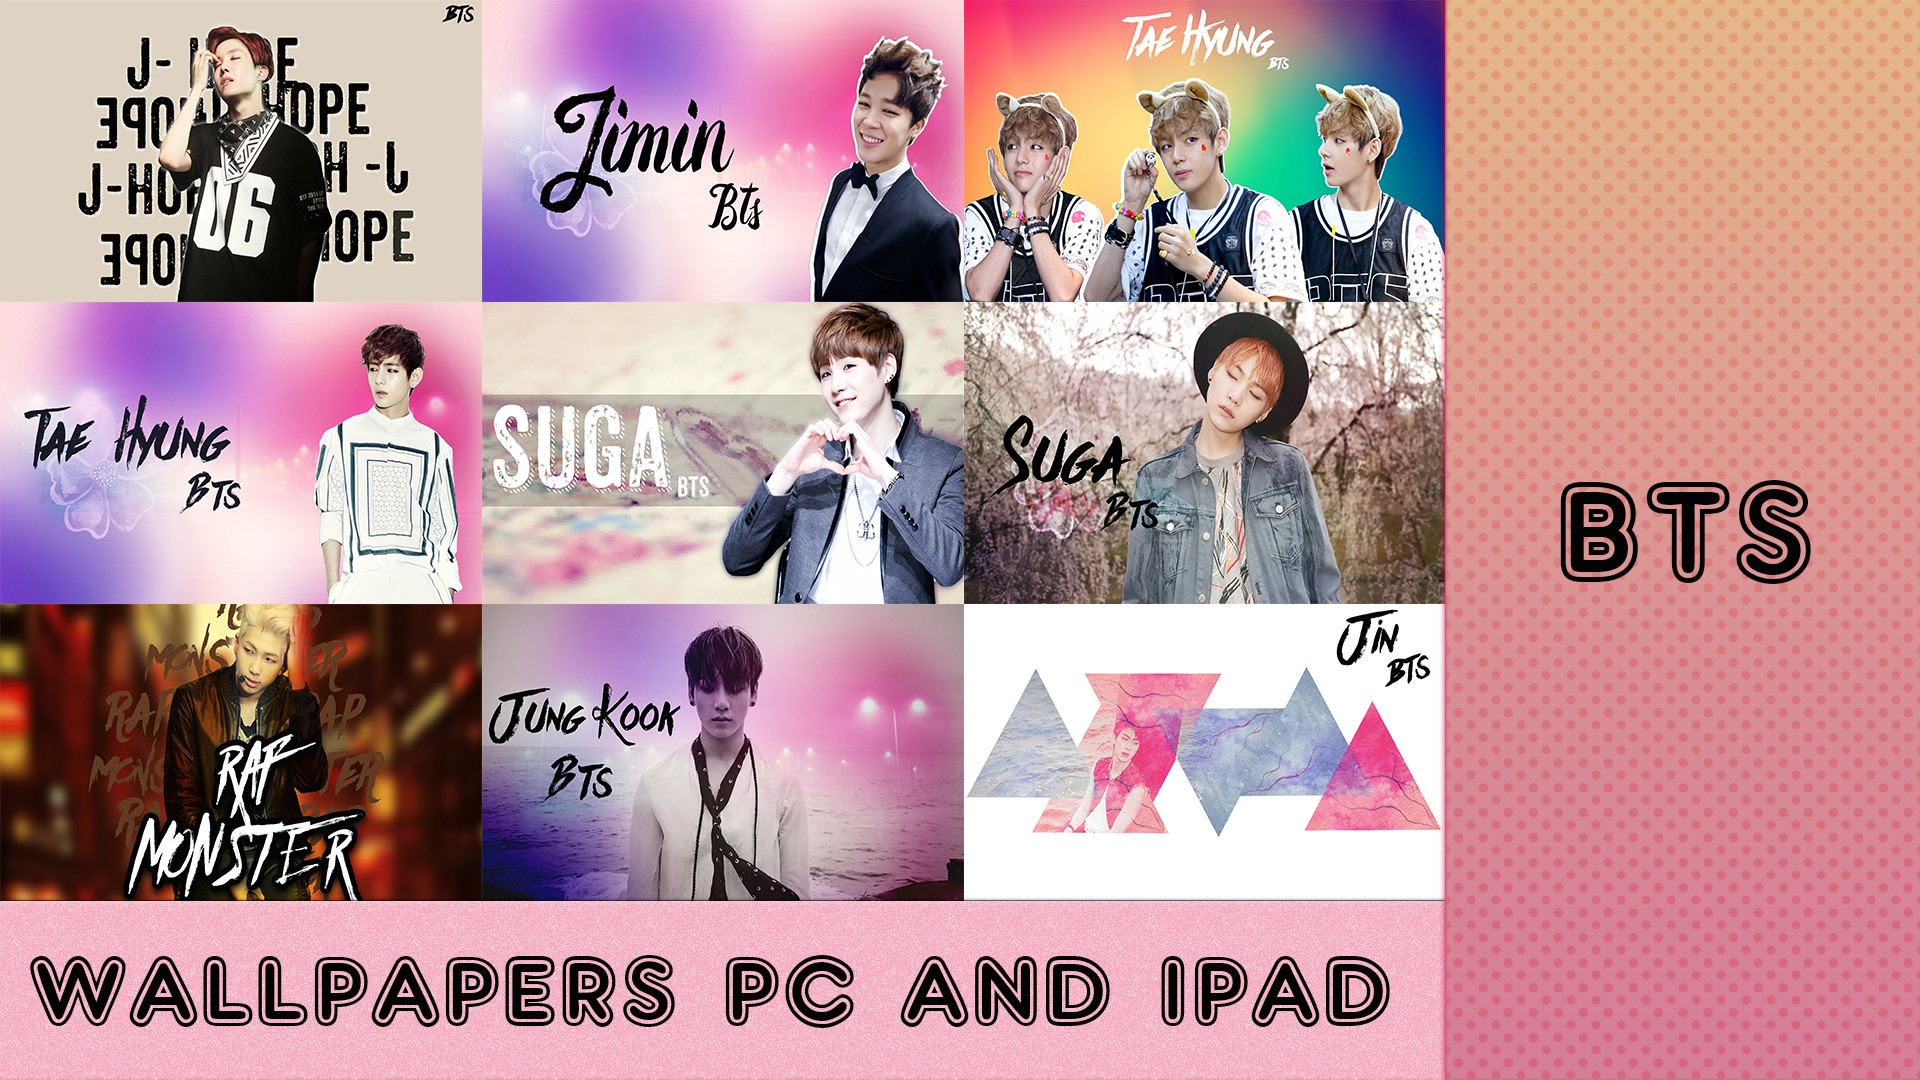 Yoonmin Cute Pictures For Wallpapers Bts Wallpaper 183 ① Download Free Beautiful High Resolution